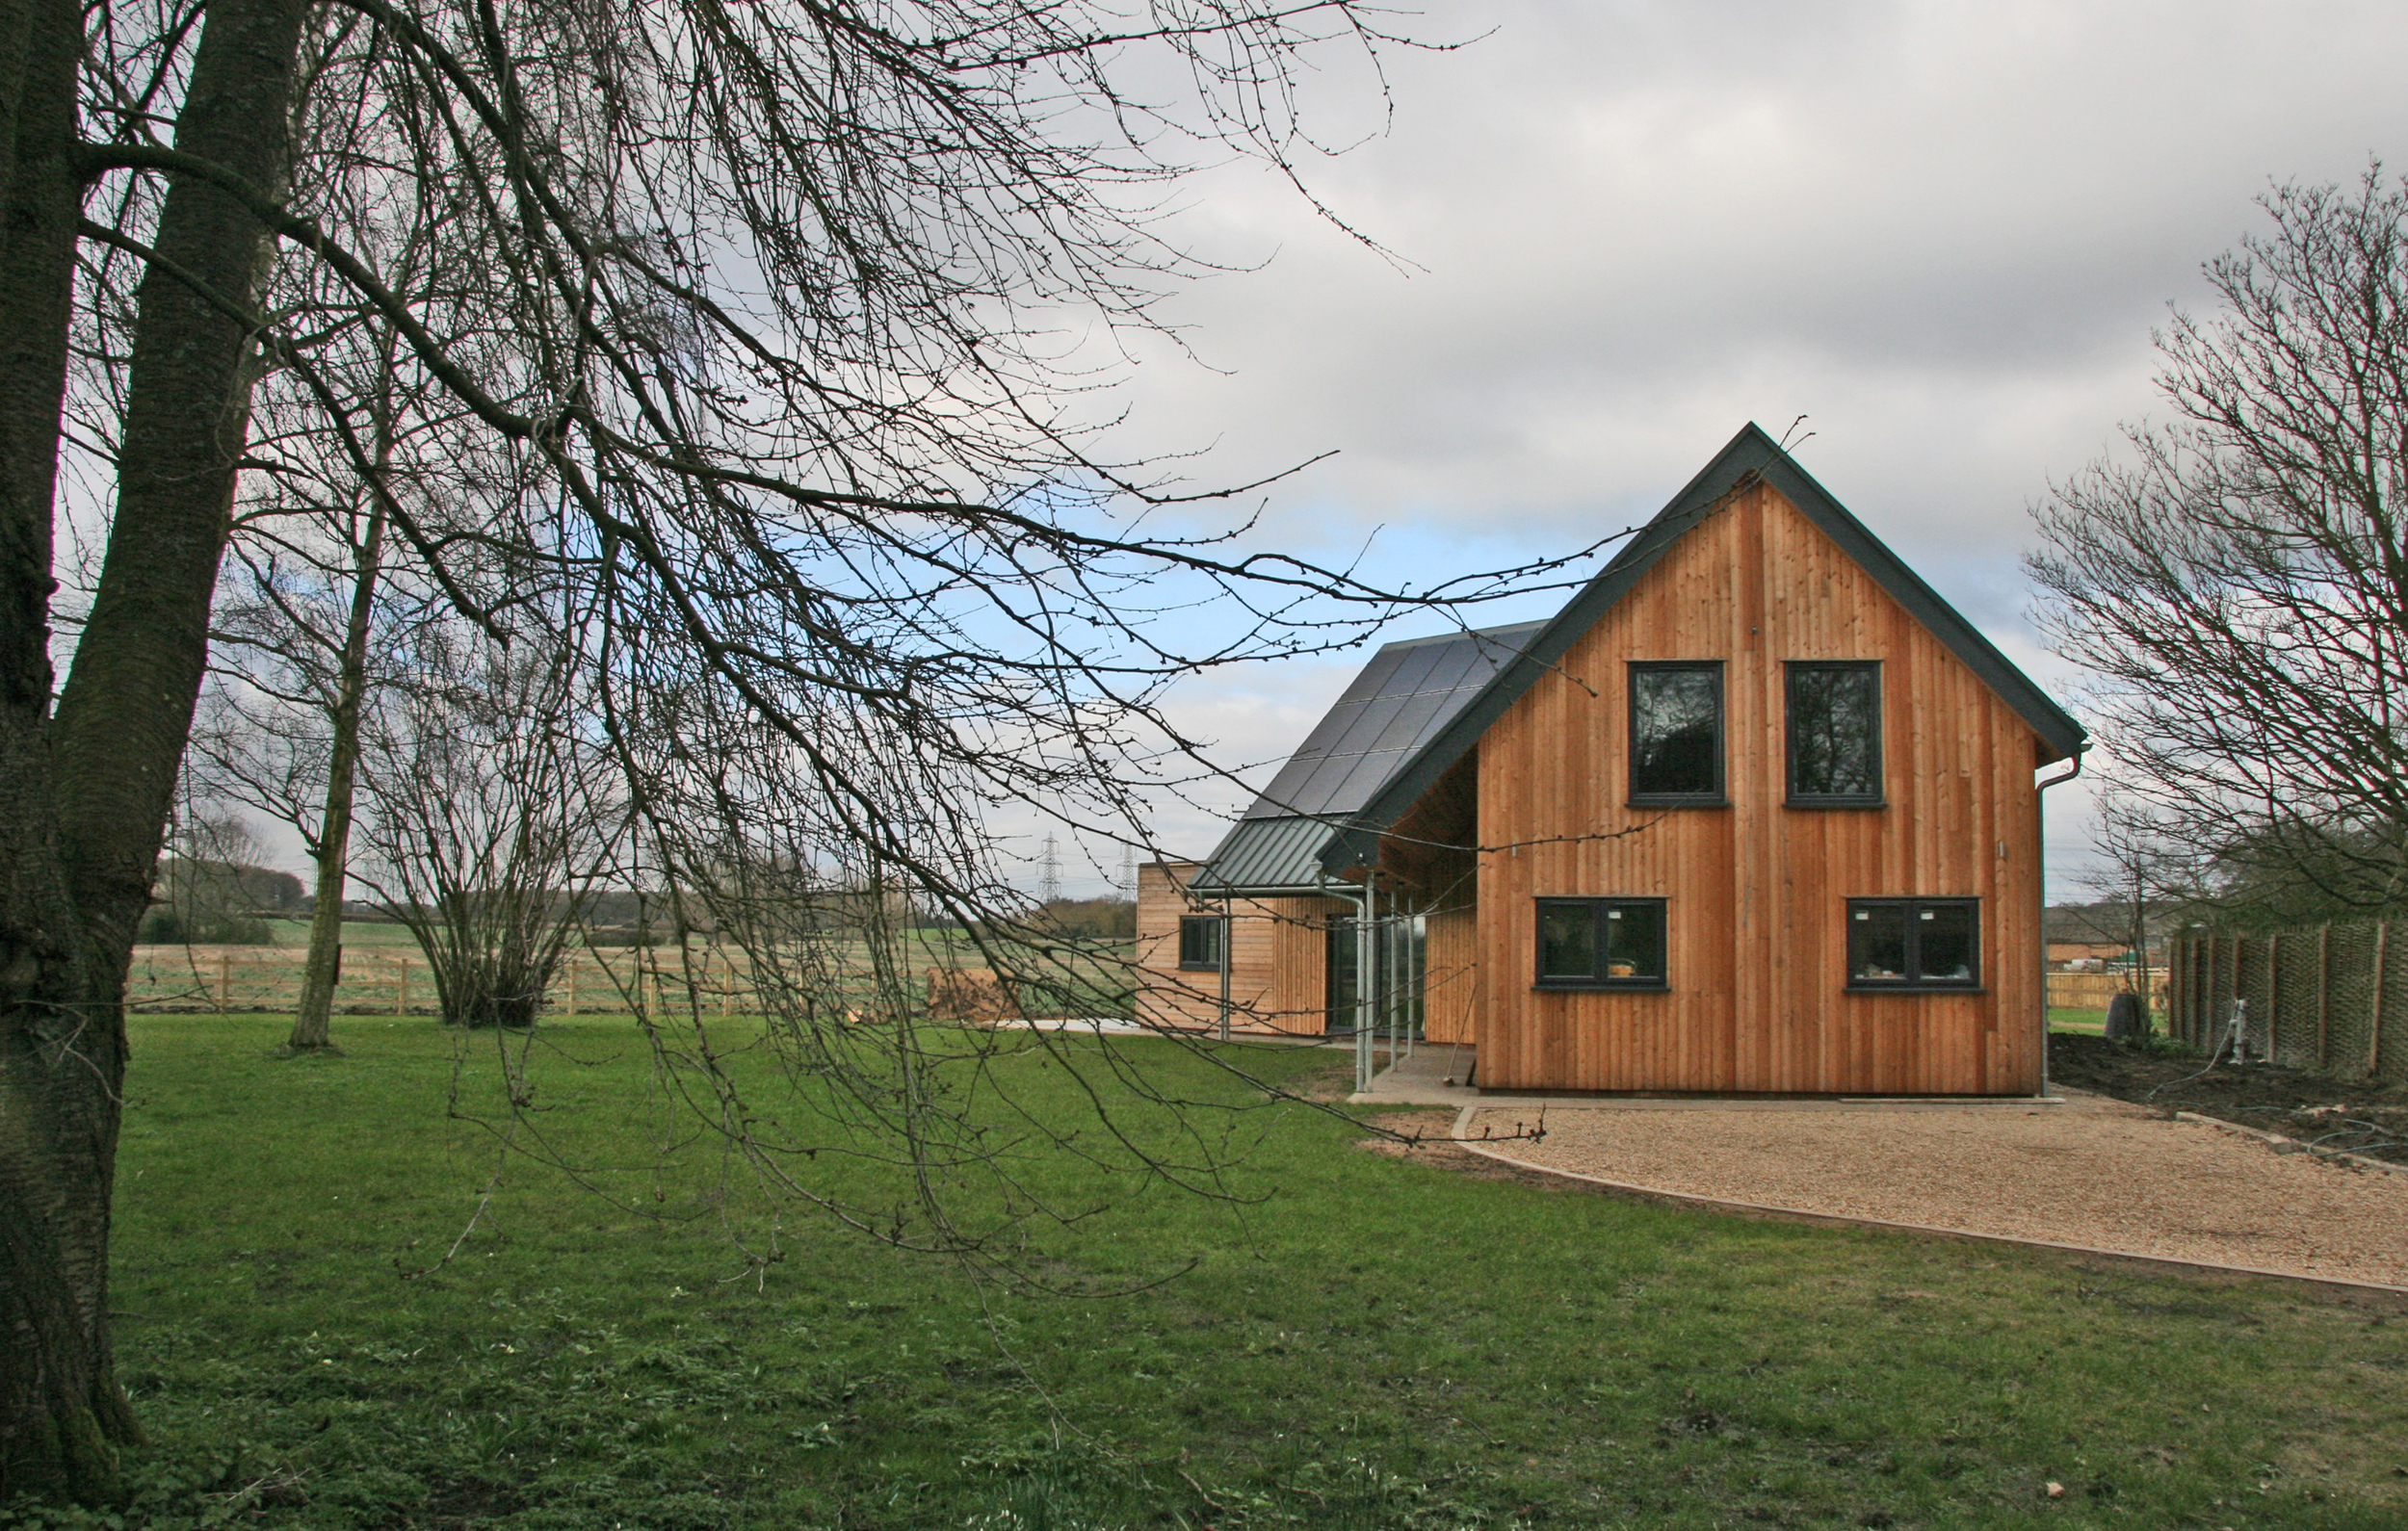 The house aims to exemplify low energy housing, reducing inputs of energy, whilst maintaining user comfort. The new dwelling incorporates; much higher than statutory required levels of insulation triple glazing, and building air-tightness, Careful solar orientation & fenestration. Ground source heating & Photovoltaics, low energy fittings & appliances. Energy efficiency was high on the client's agenda, and the completed building has kept true to this initial brief.